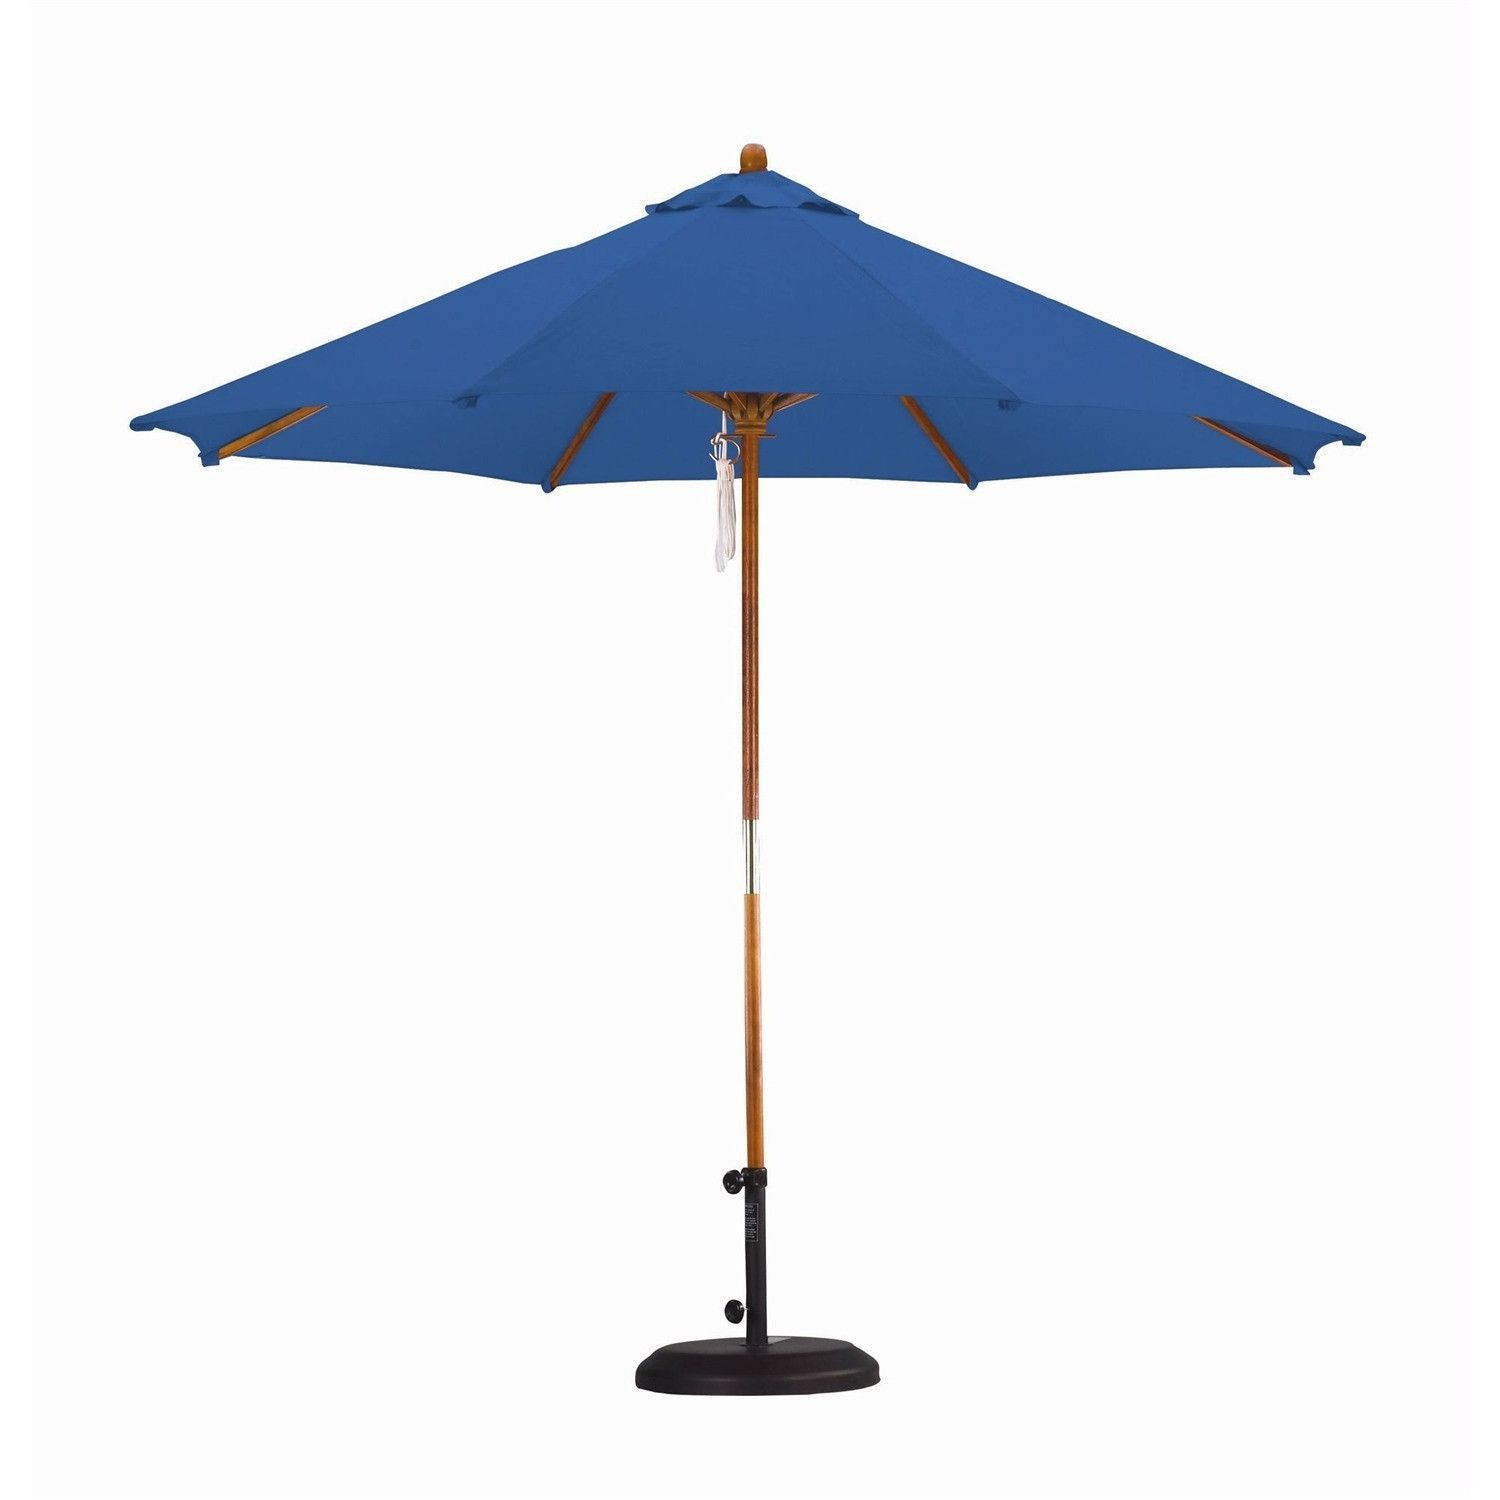 9 Ft Pulley Patio Umbrella with Pacific Blue Canopy